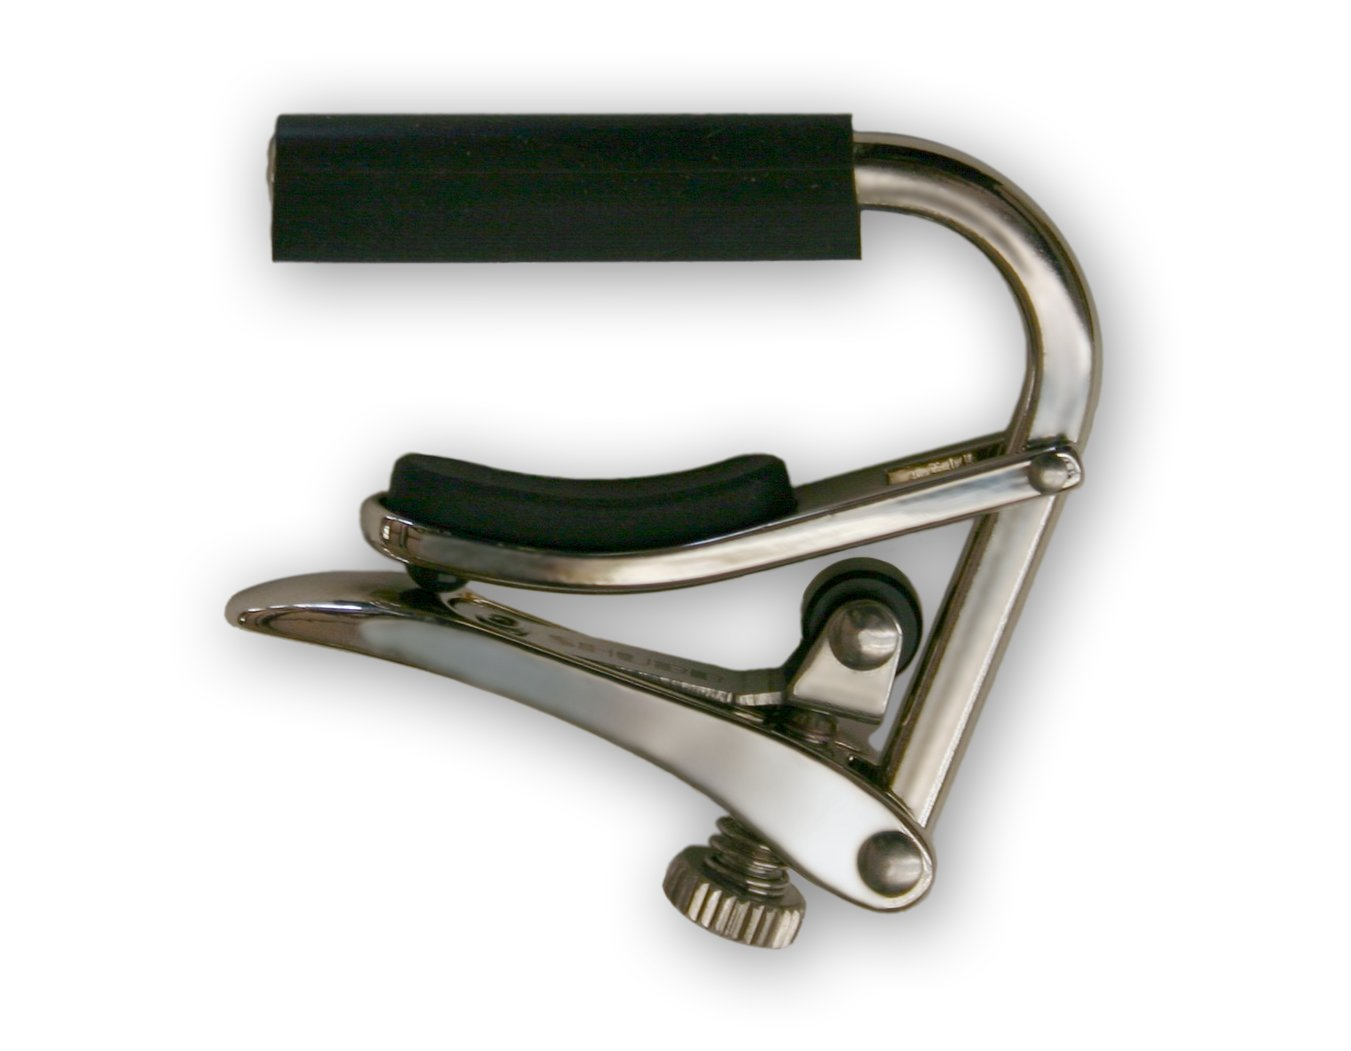 Shubb C5 Banjo Capo (also fits most mandolins and bouzoukis) - flat fretboard